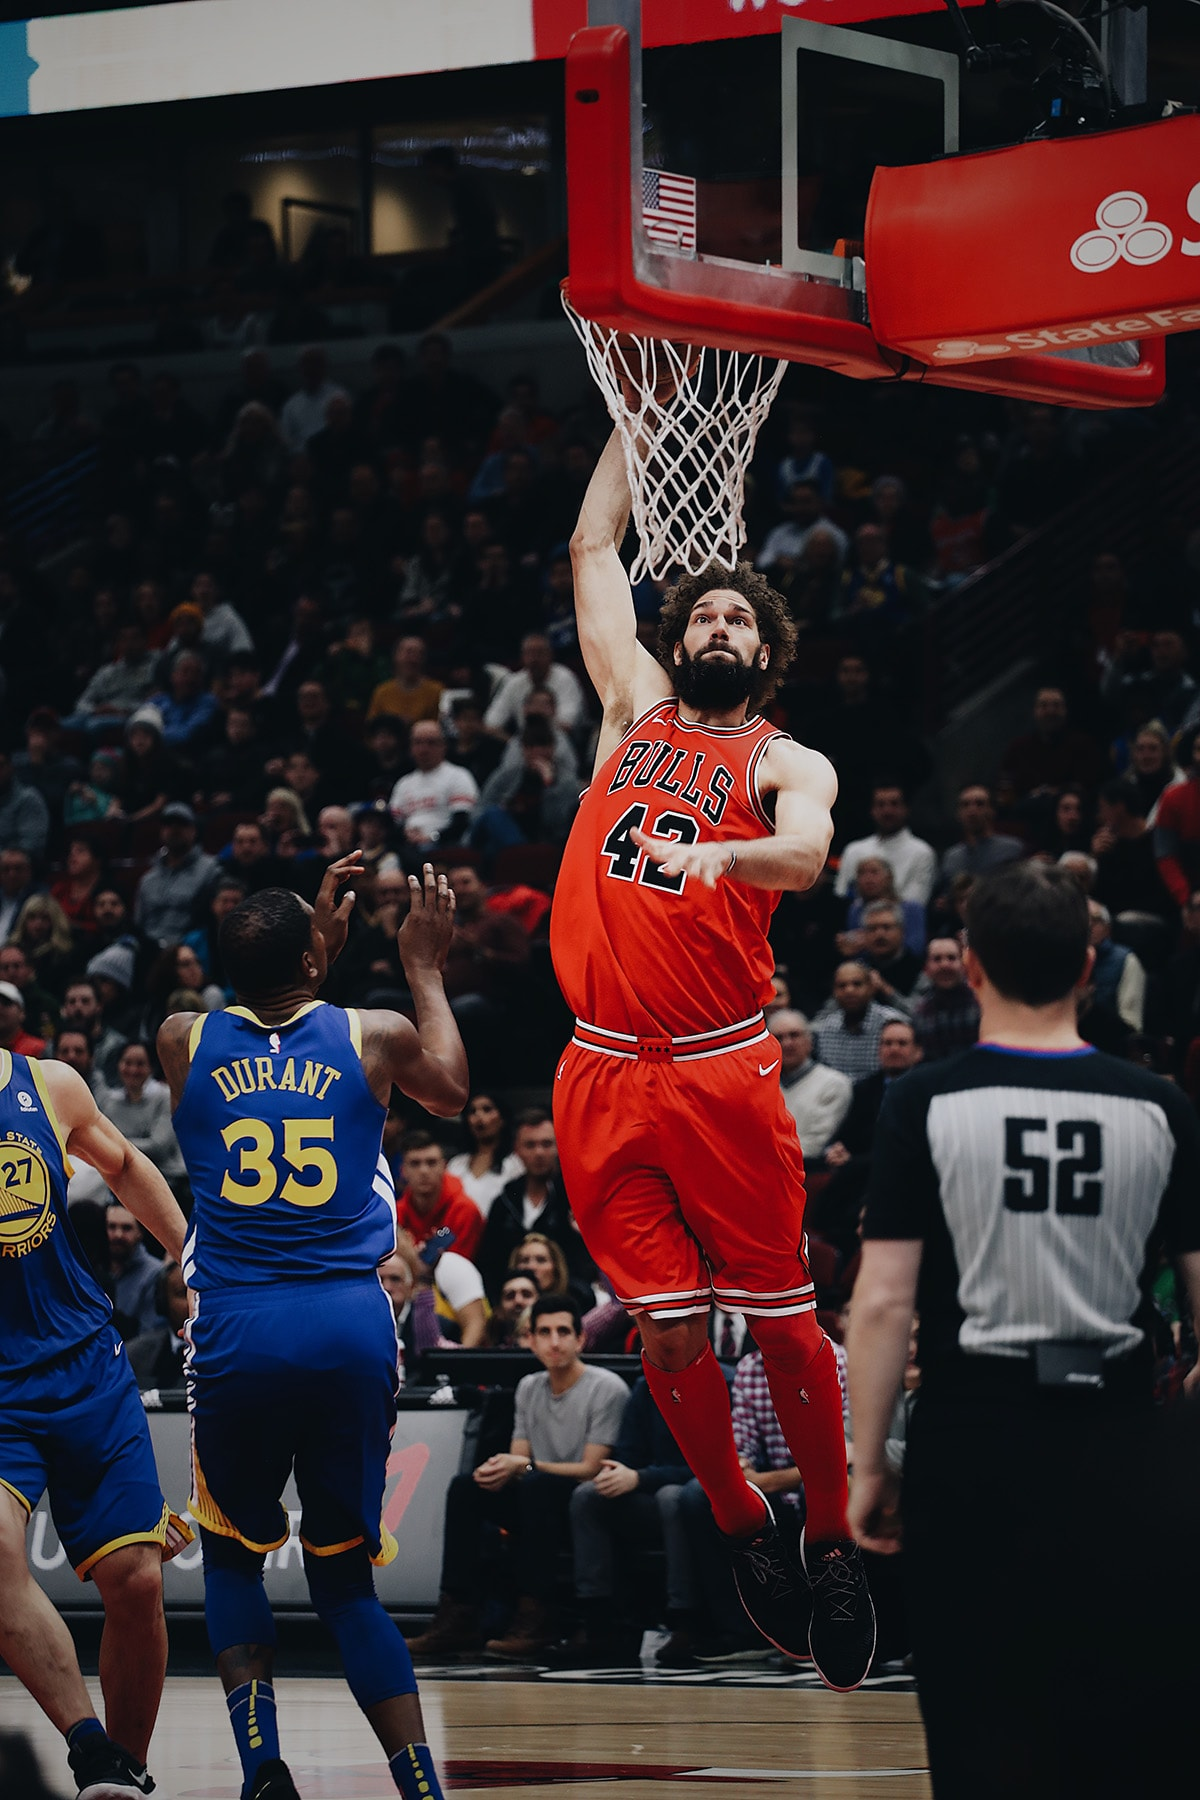 Robin Lopez with a dunk vs the Golden State Warriors